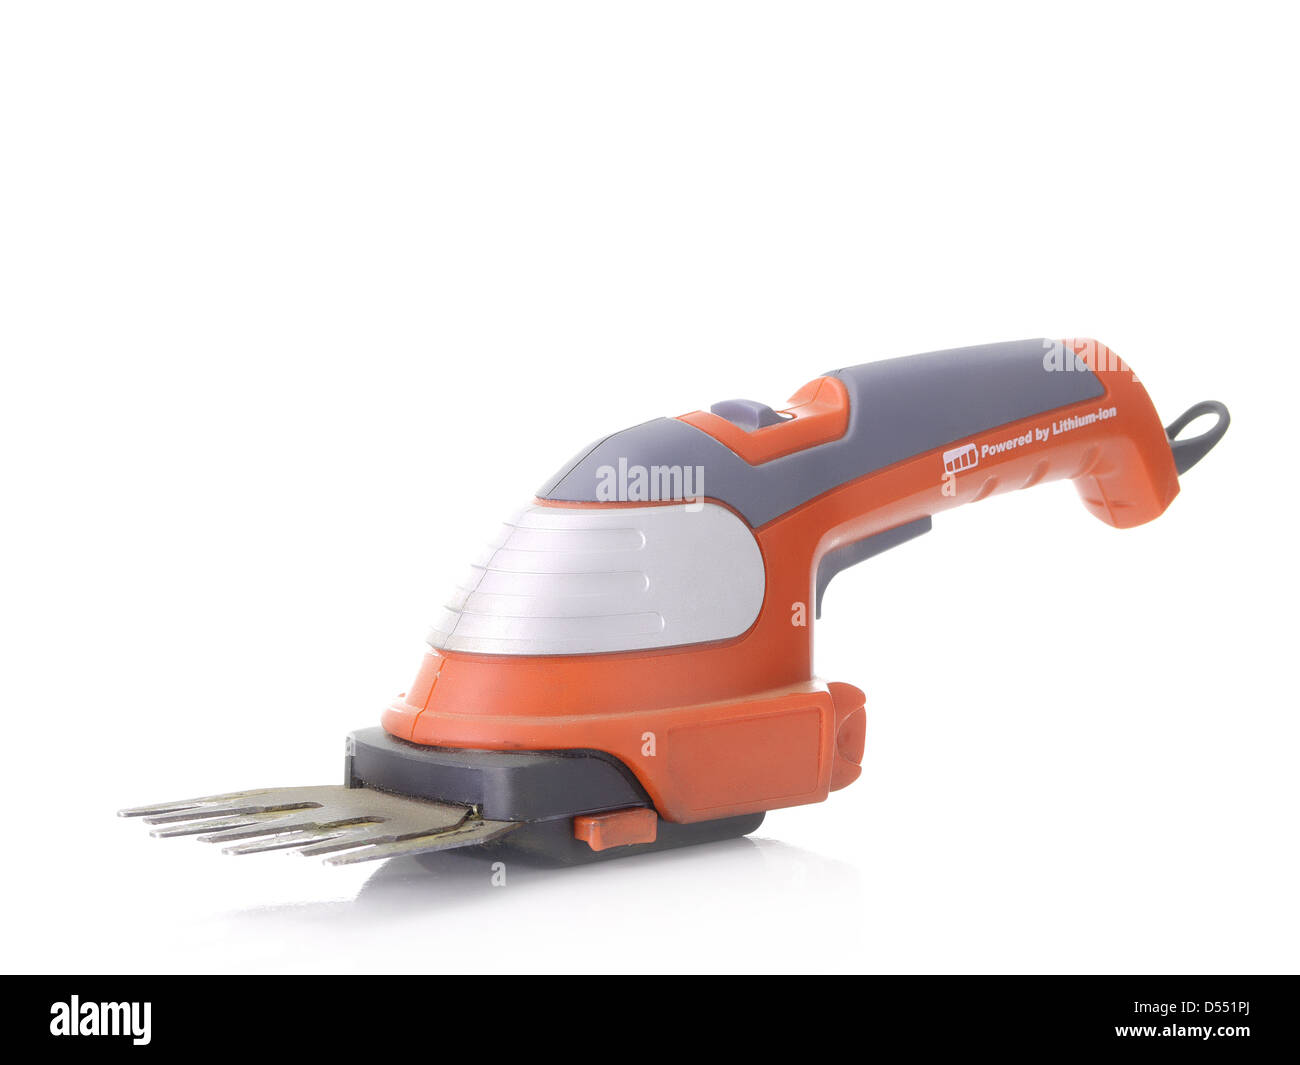 Grass trimmer shot on white - Stock Image